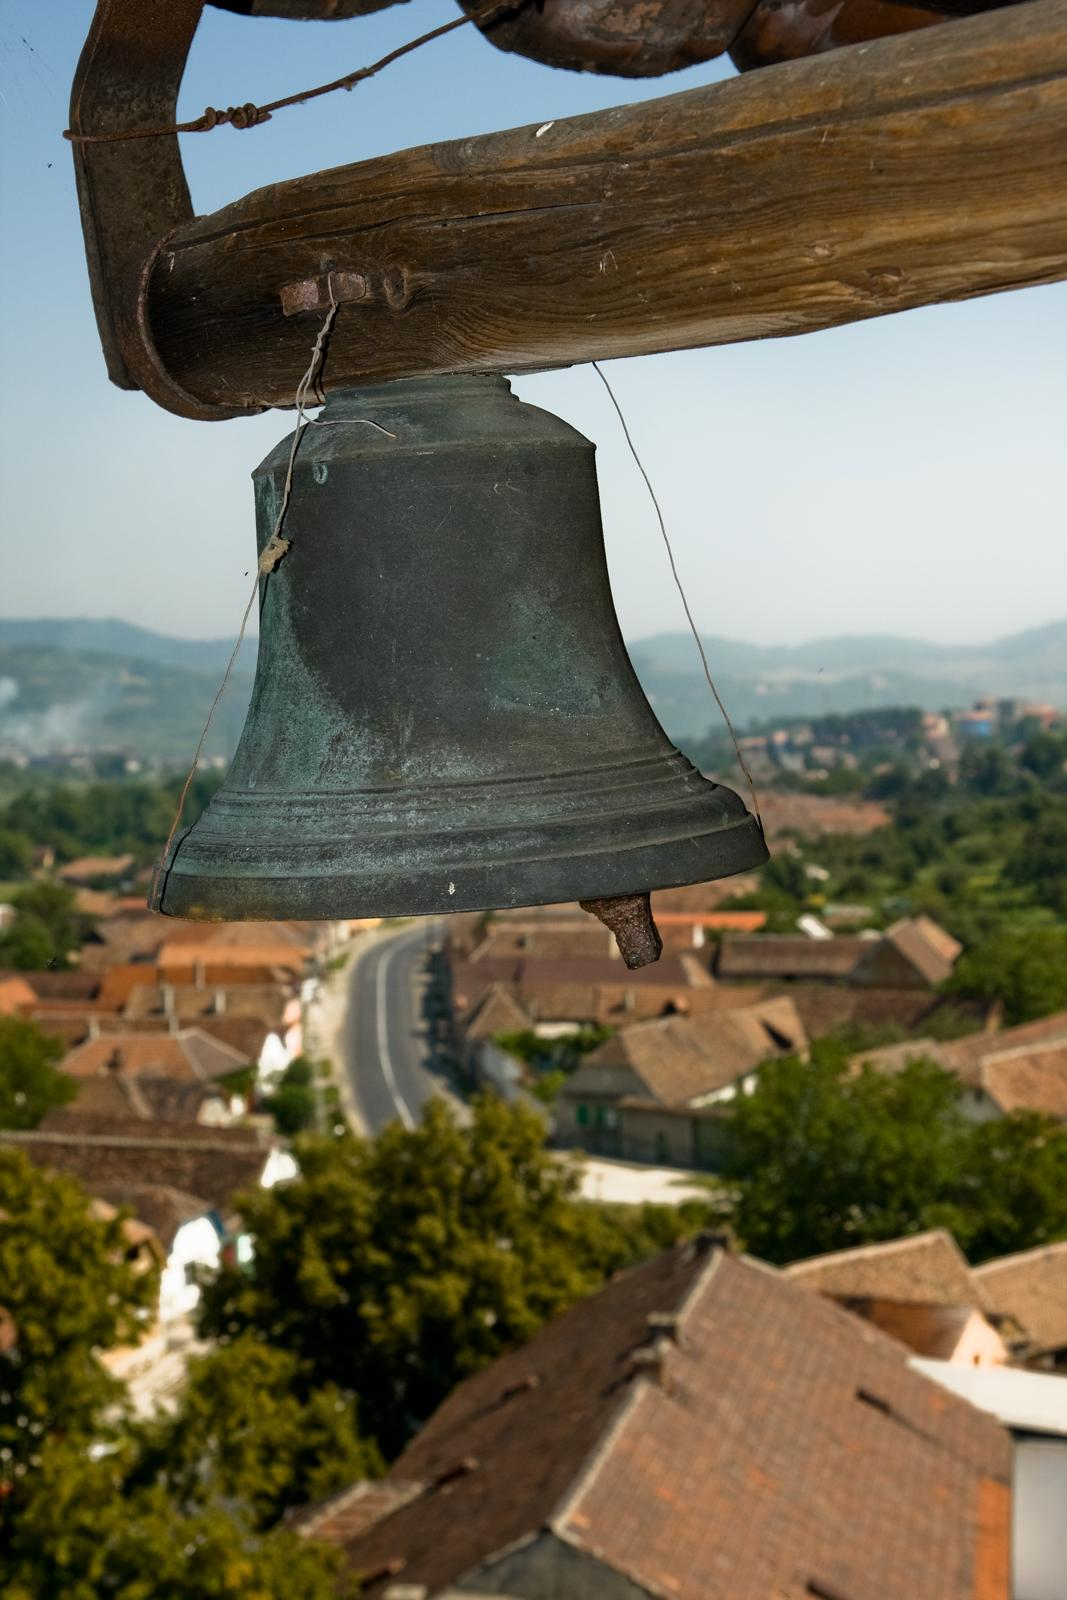 """The smaller bell from Slimnic's fortified church"" by Horia Varlan is licensed under CC BY 2.0"